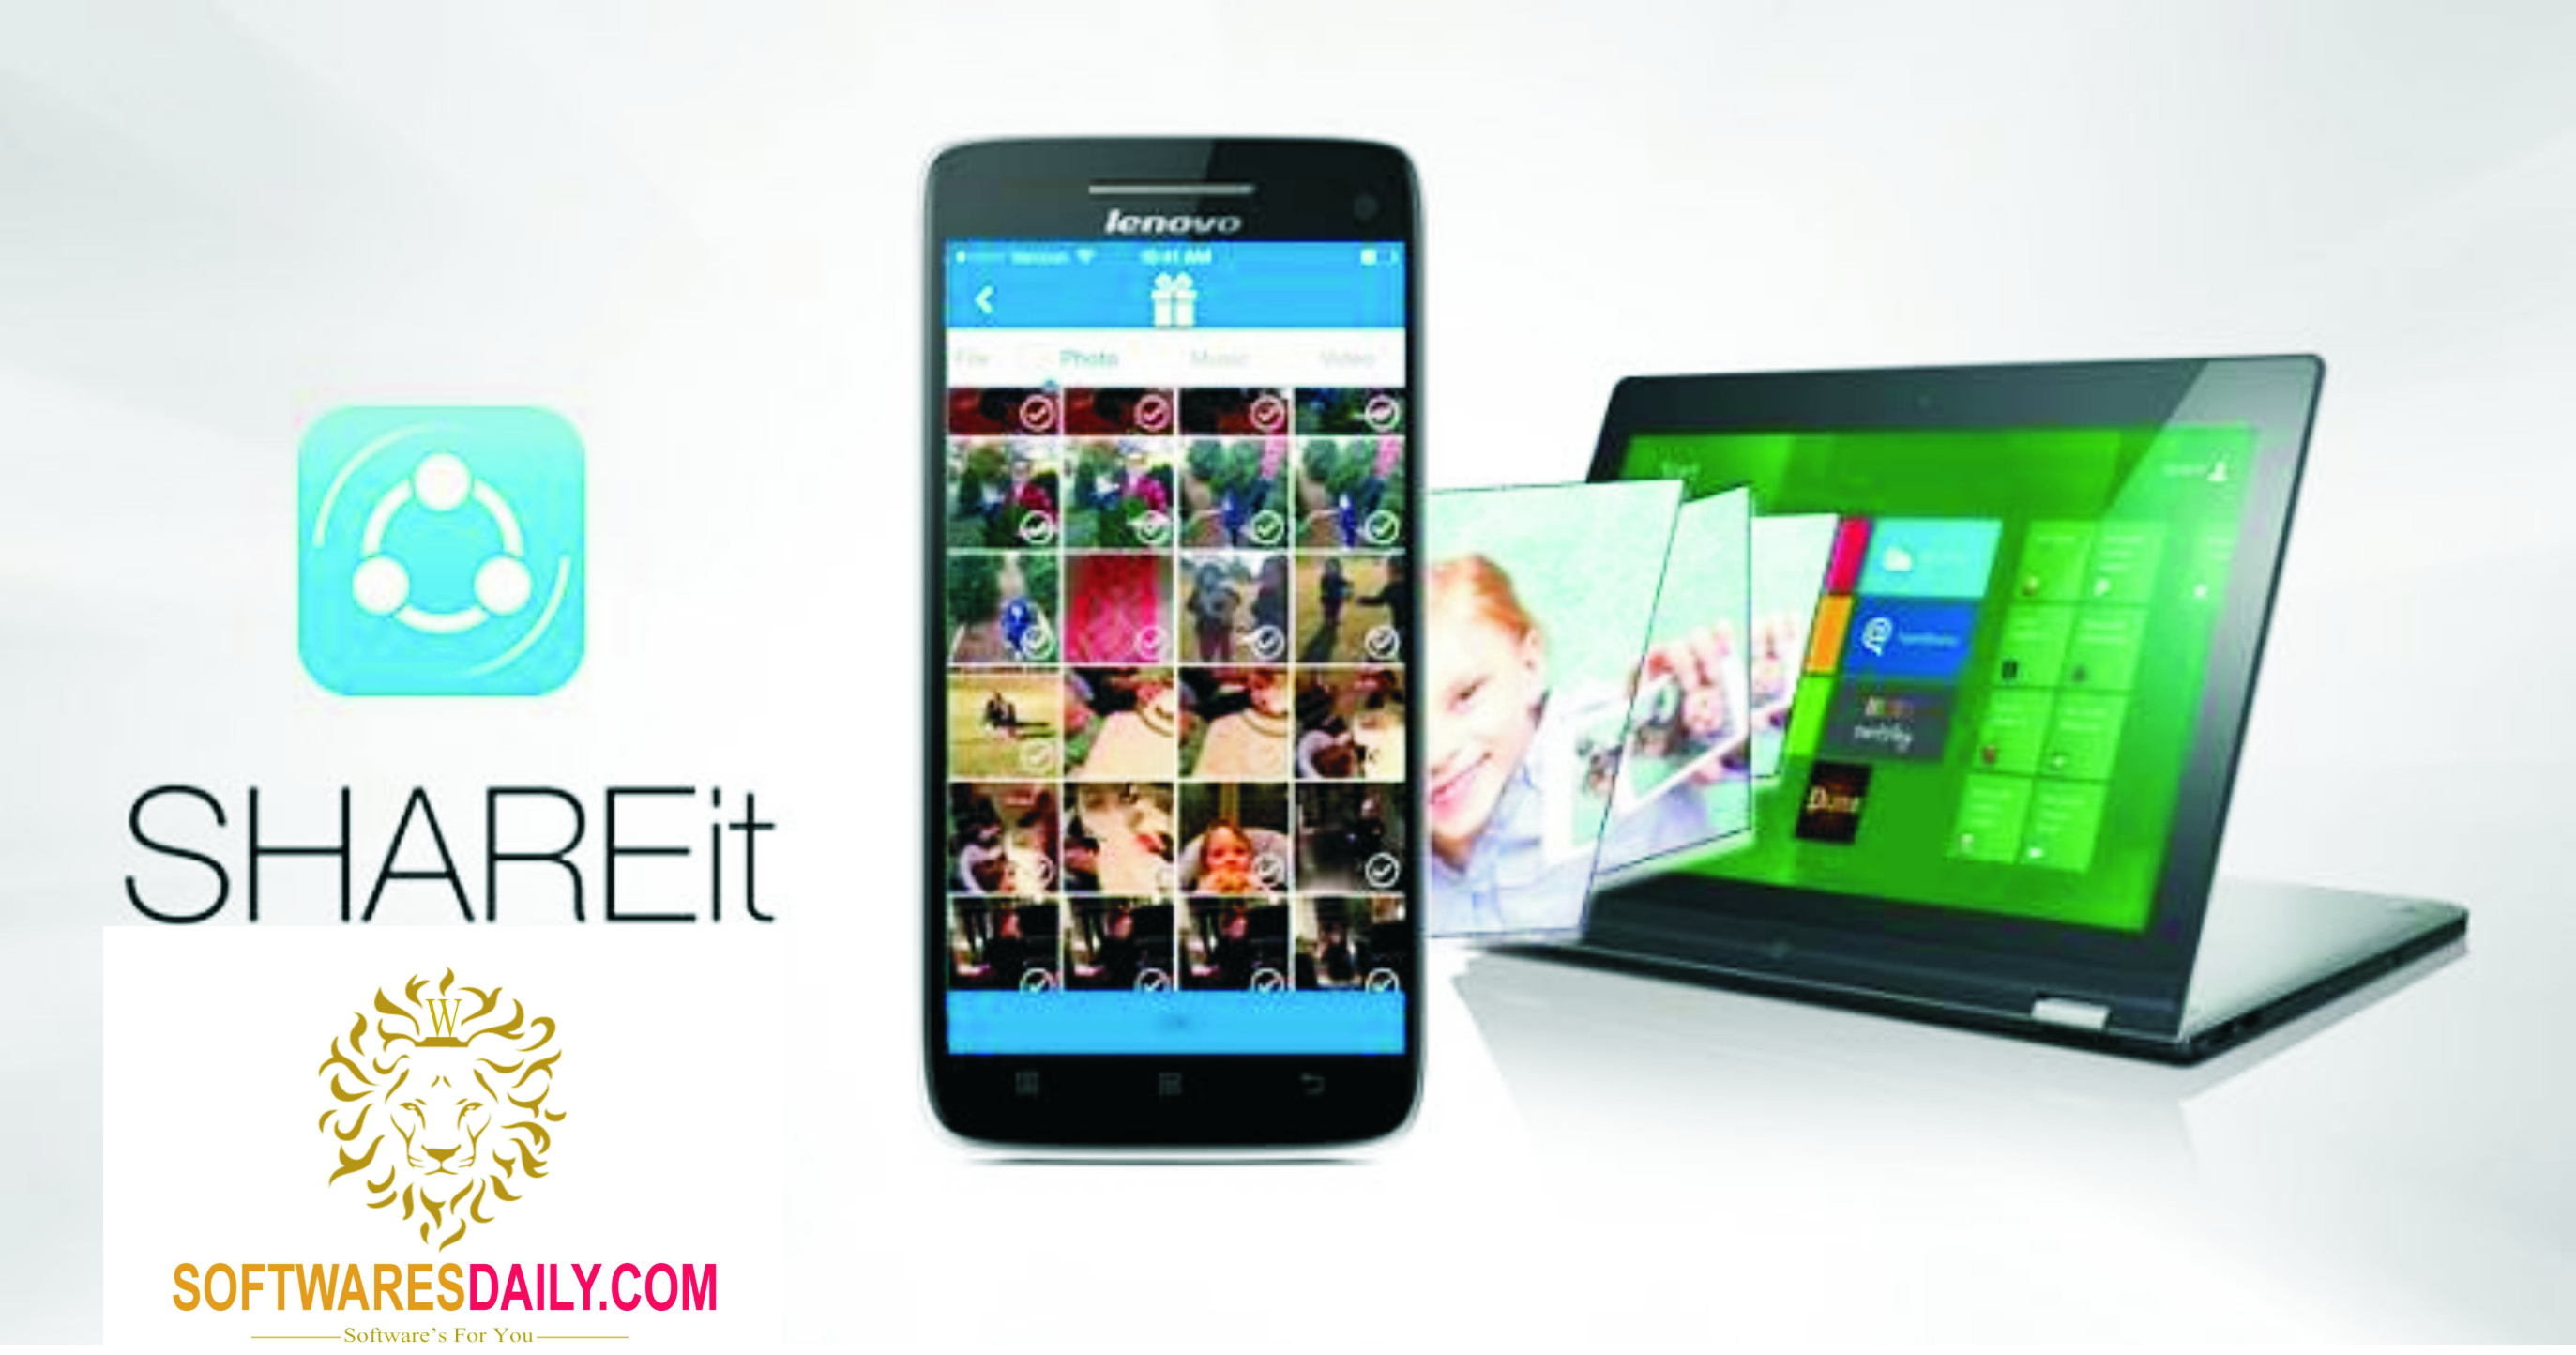 SHAREit 3.9.98 APK For Android Full Free Download